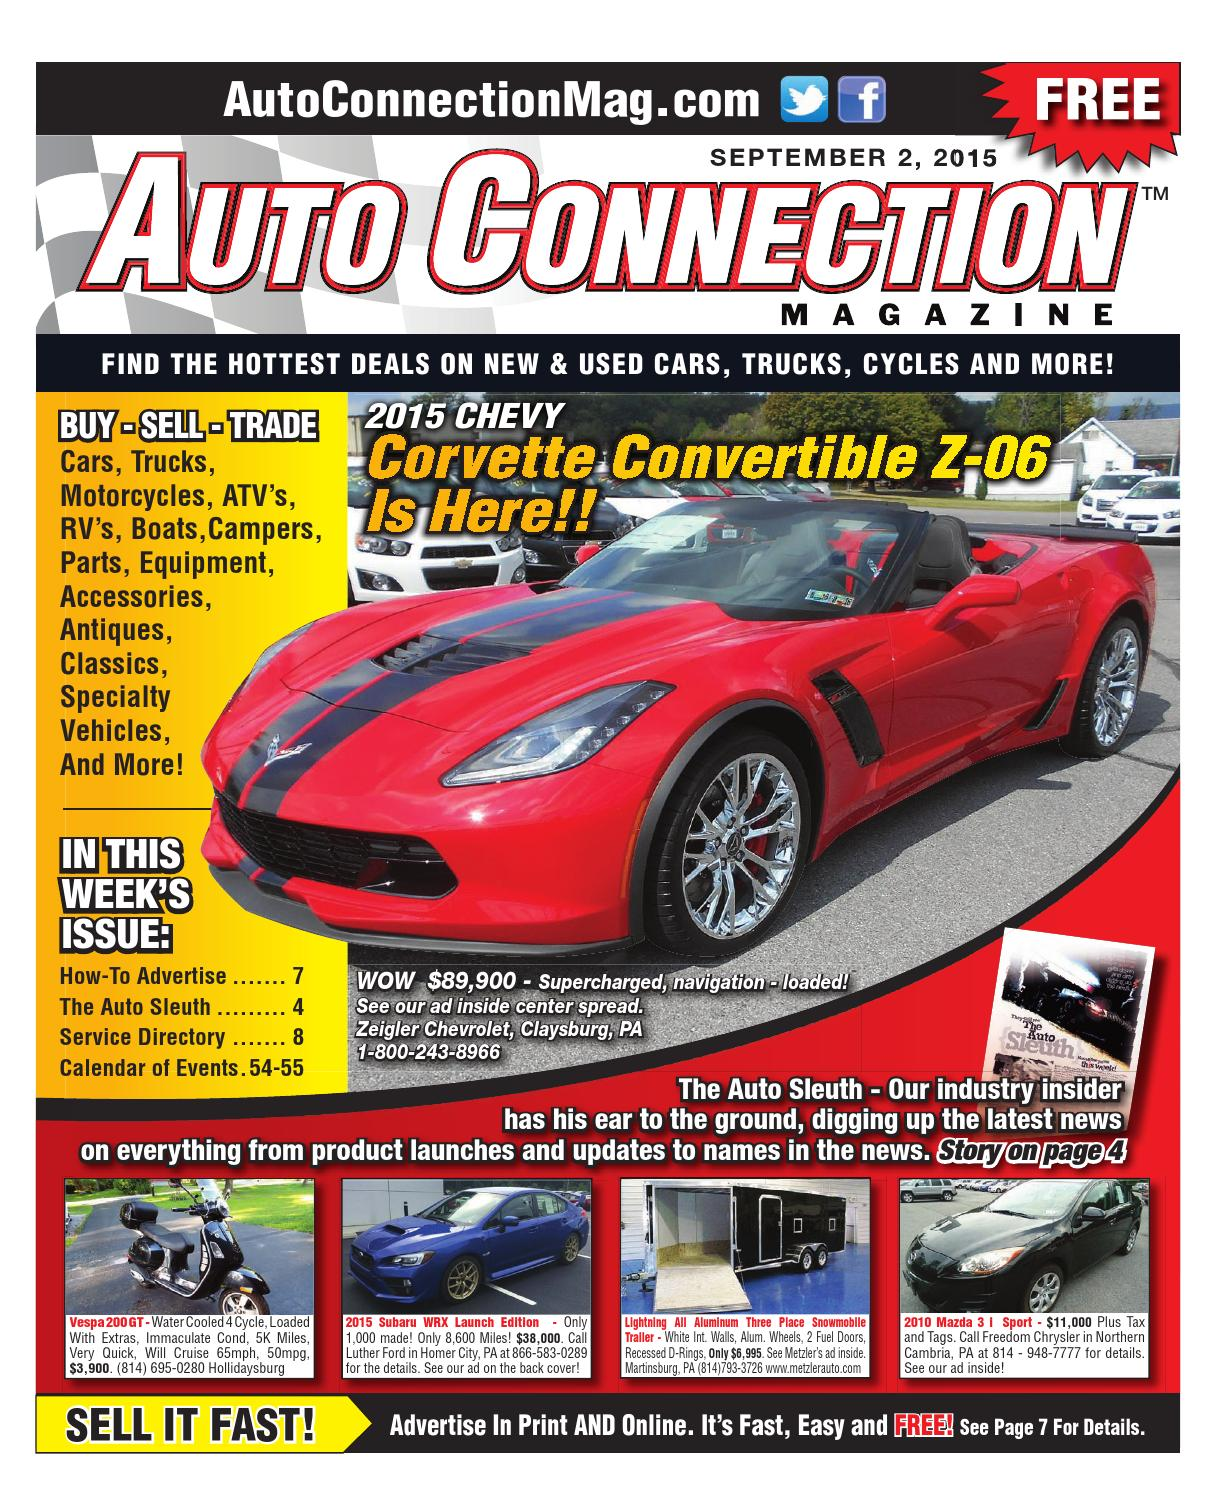 09-02-15 Auto Connection Magazine by Auto Connection